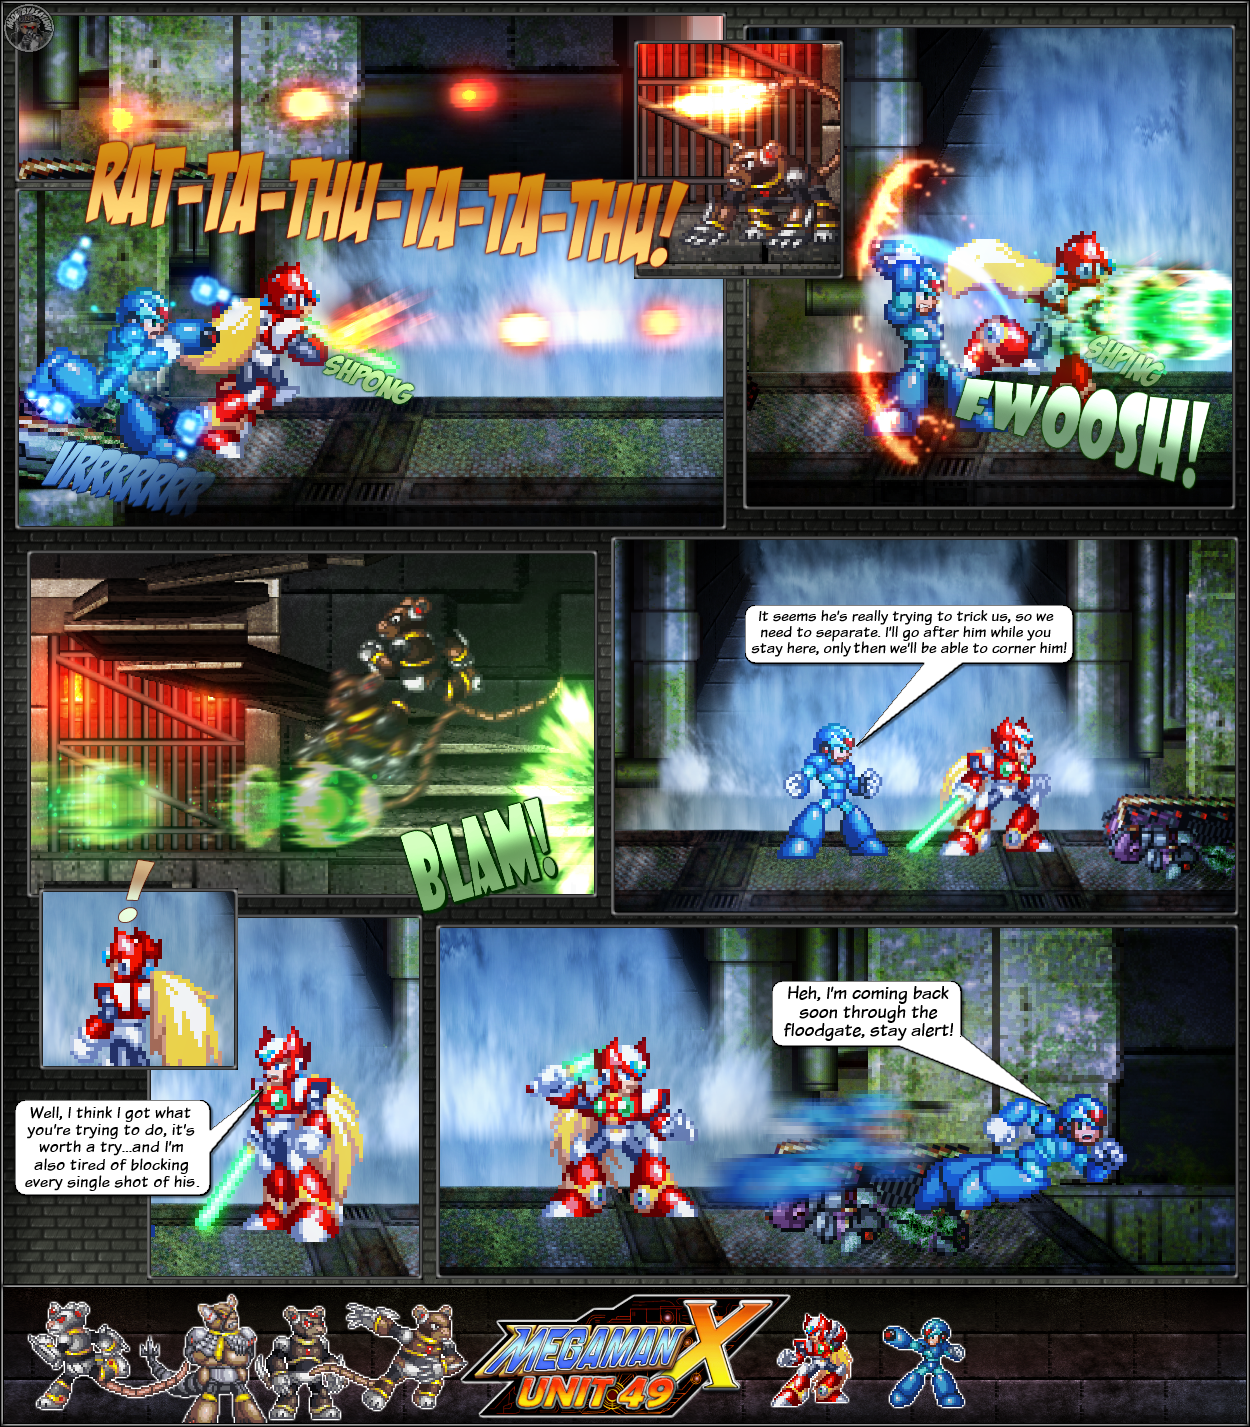 MMX:U49 - S1Ch11: Cat and Mice (Page 8) by IrregularSaturn